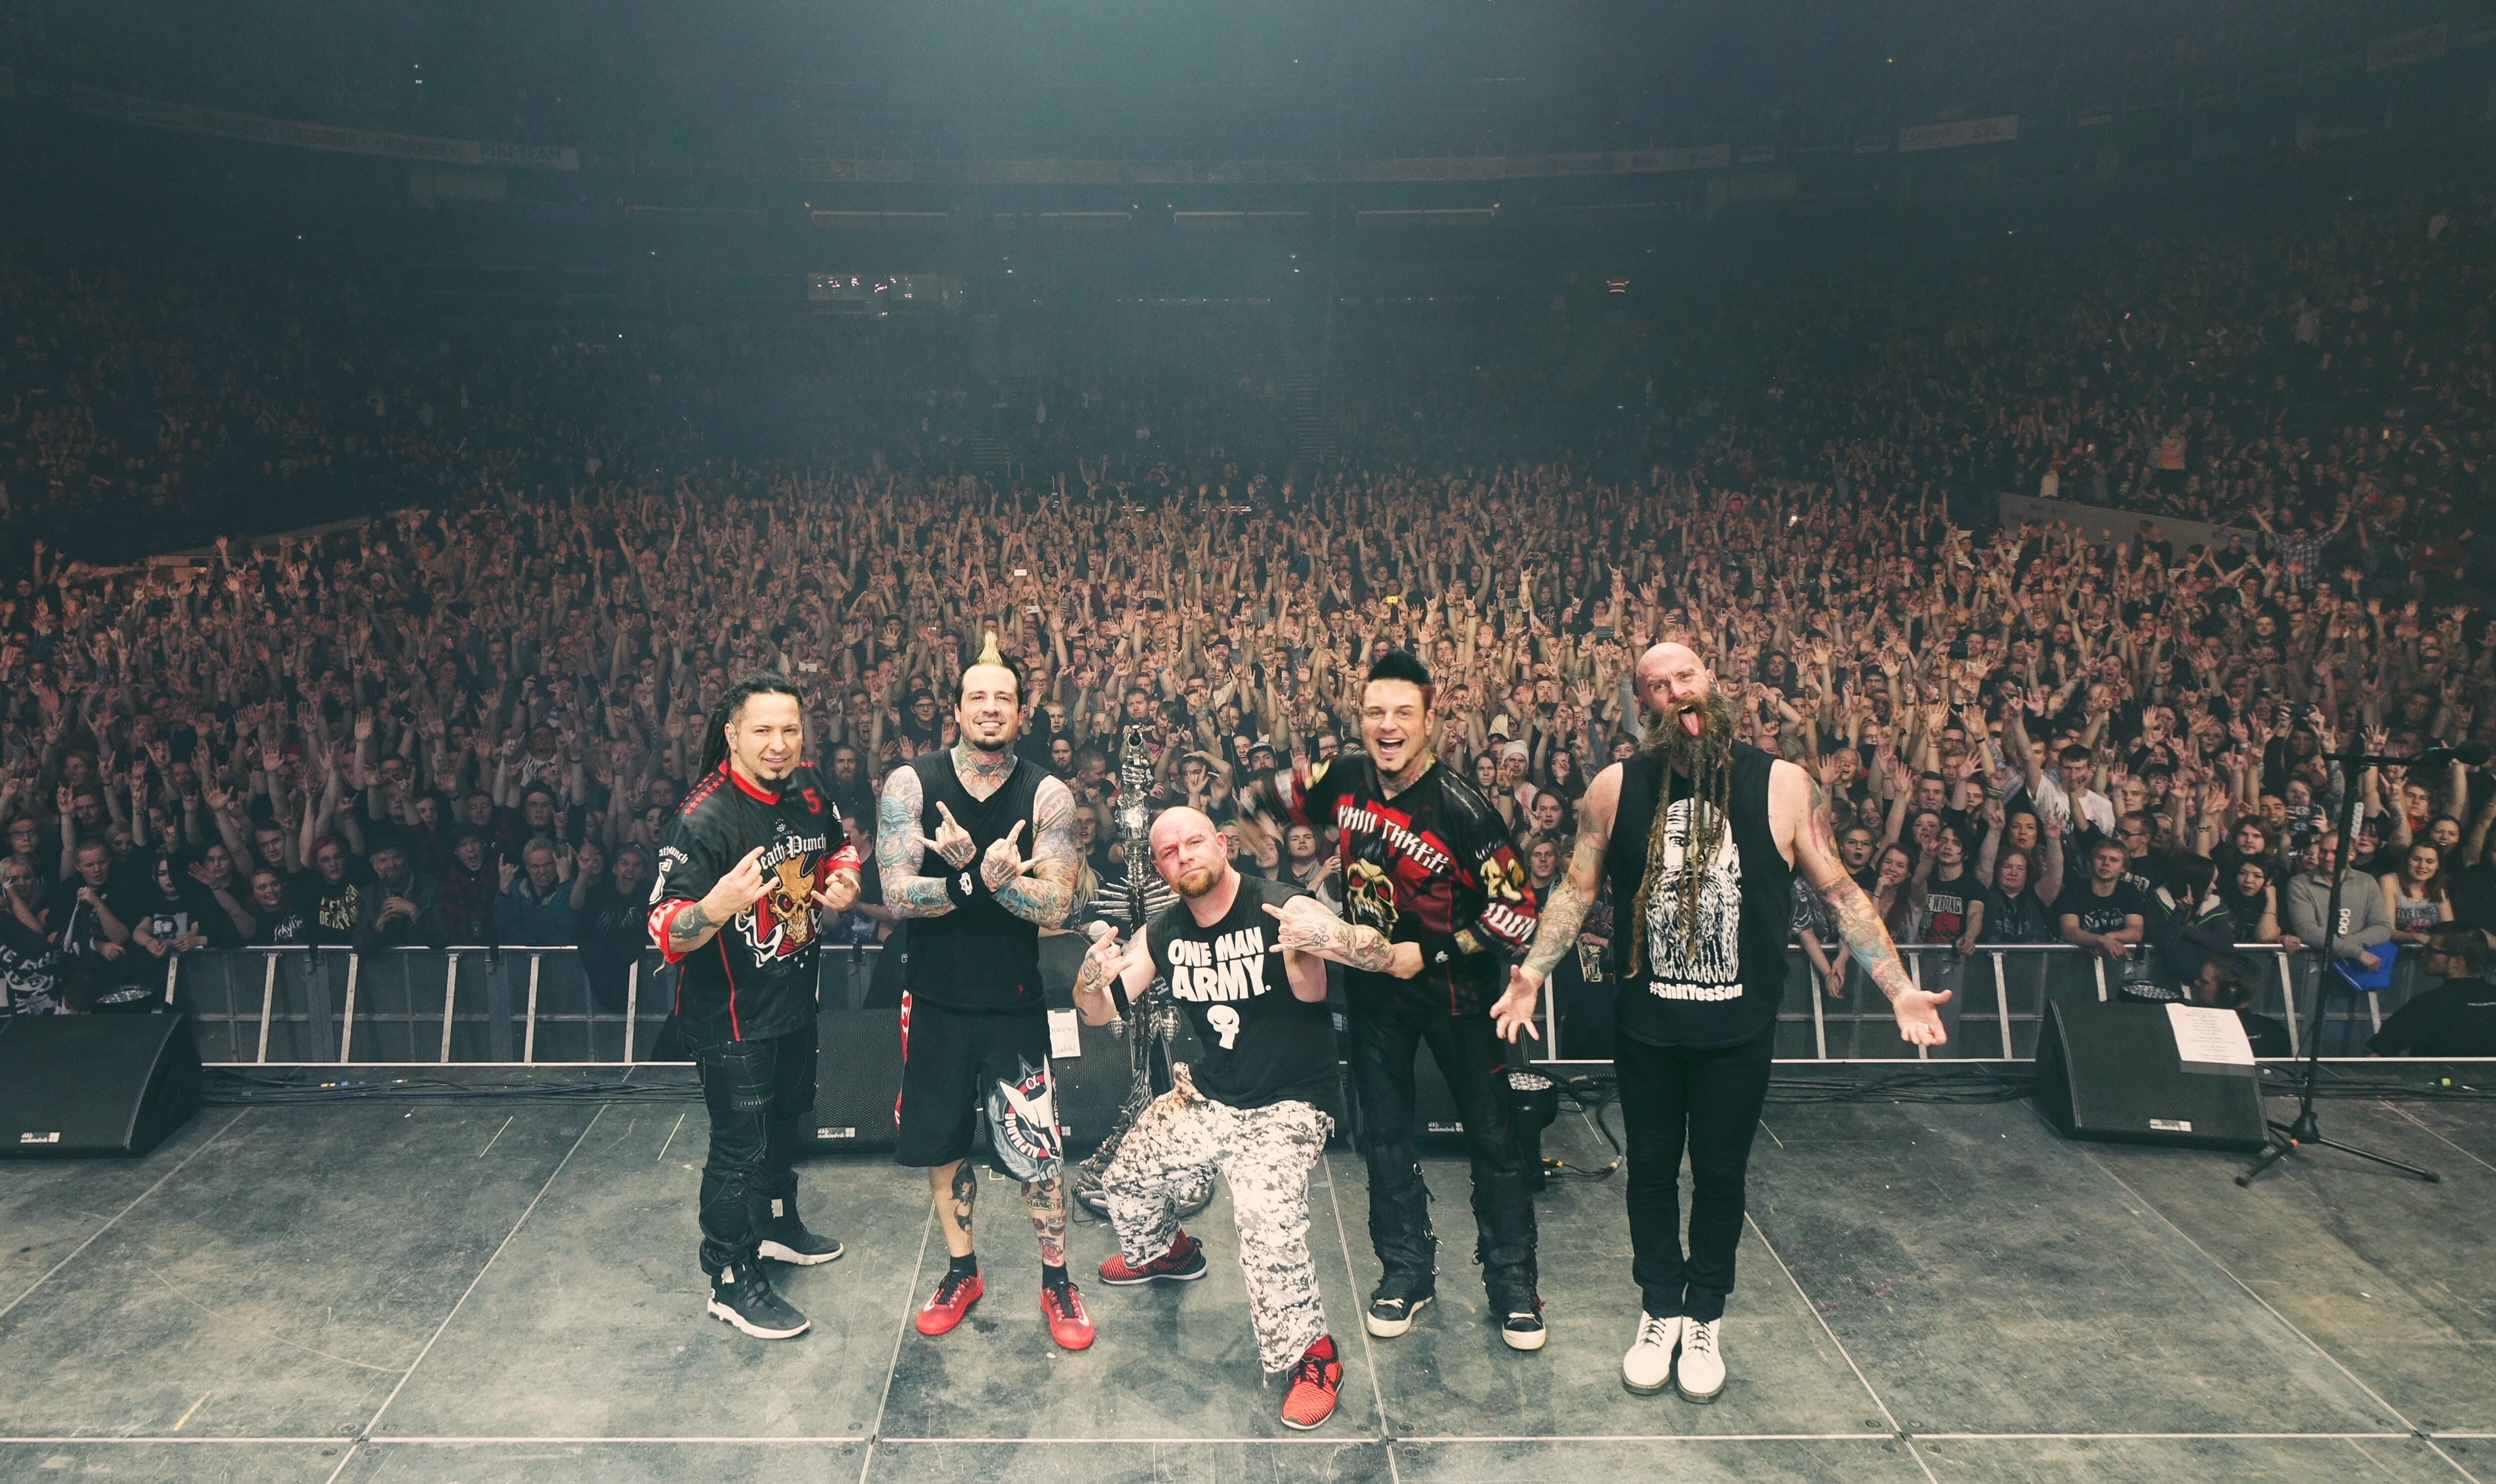 FIVE FINGER DEATH PUNCH kick off their biggest European tour to date!